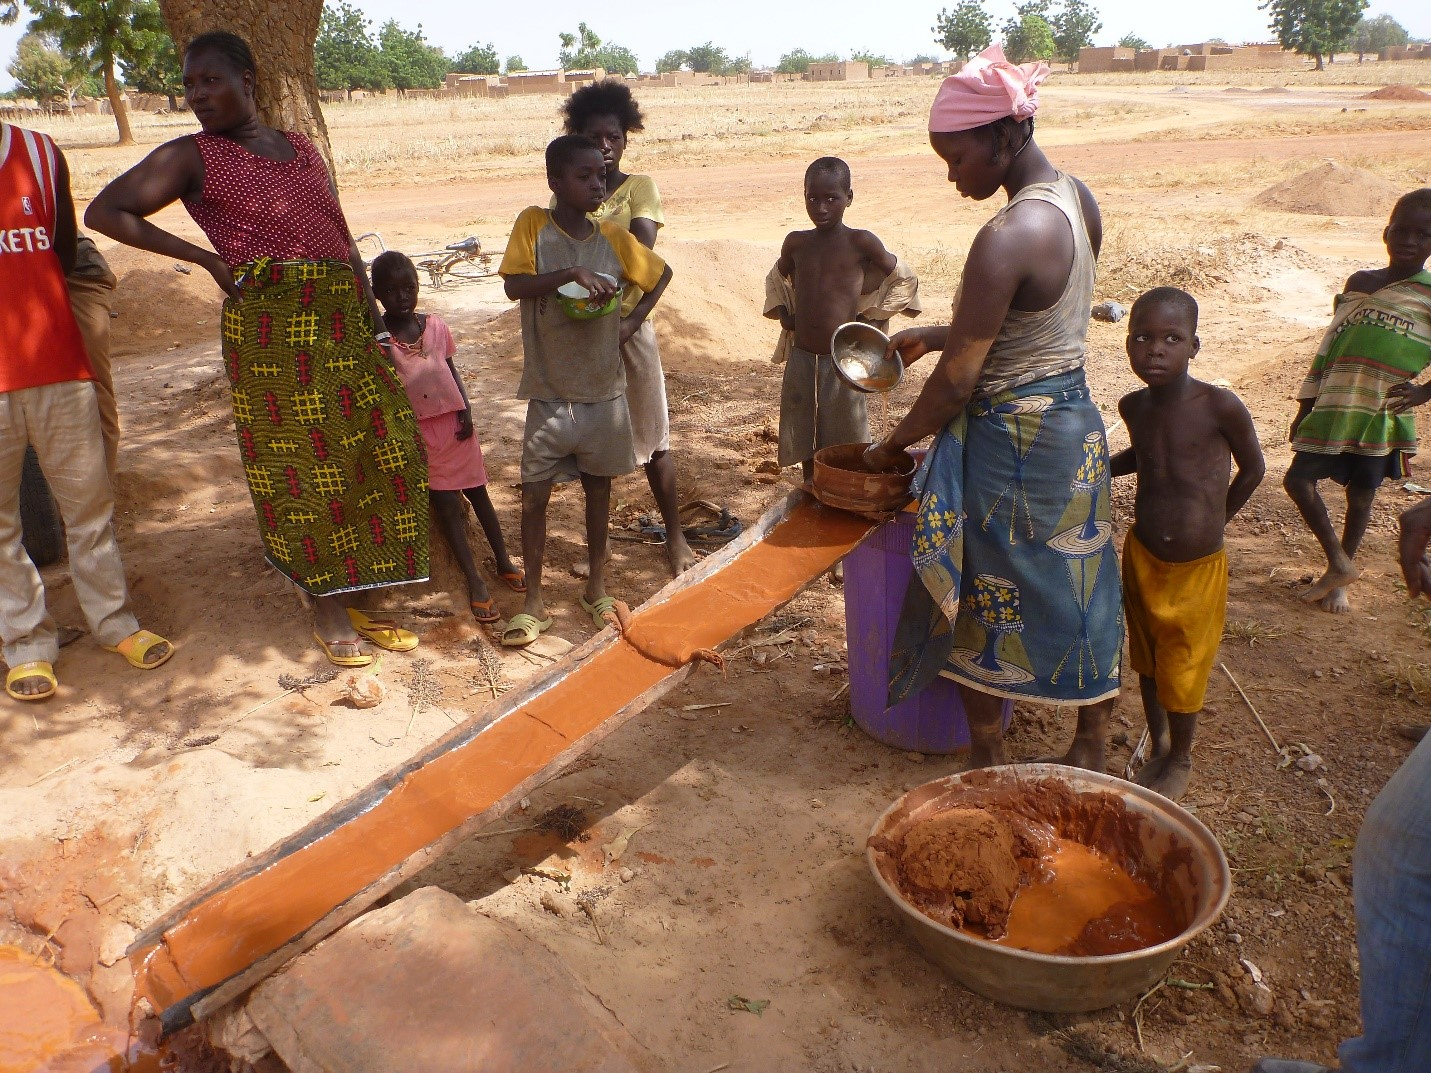 A woman miner performing sluice washing while taking care of young children (Photo credit: Dr. kevin Telmer, Artisanal Gold Council)